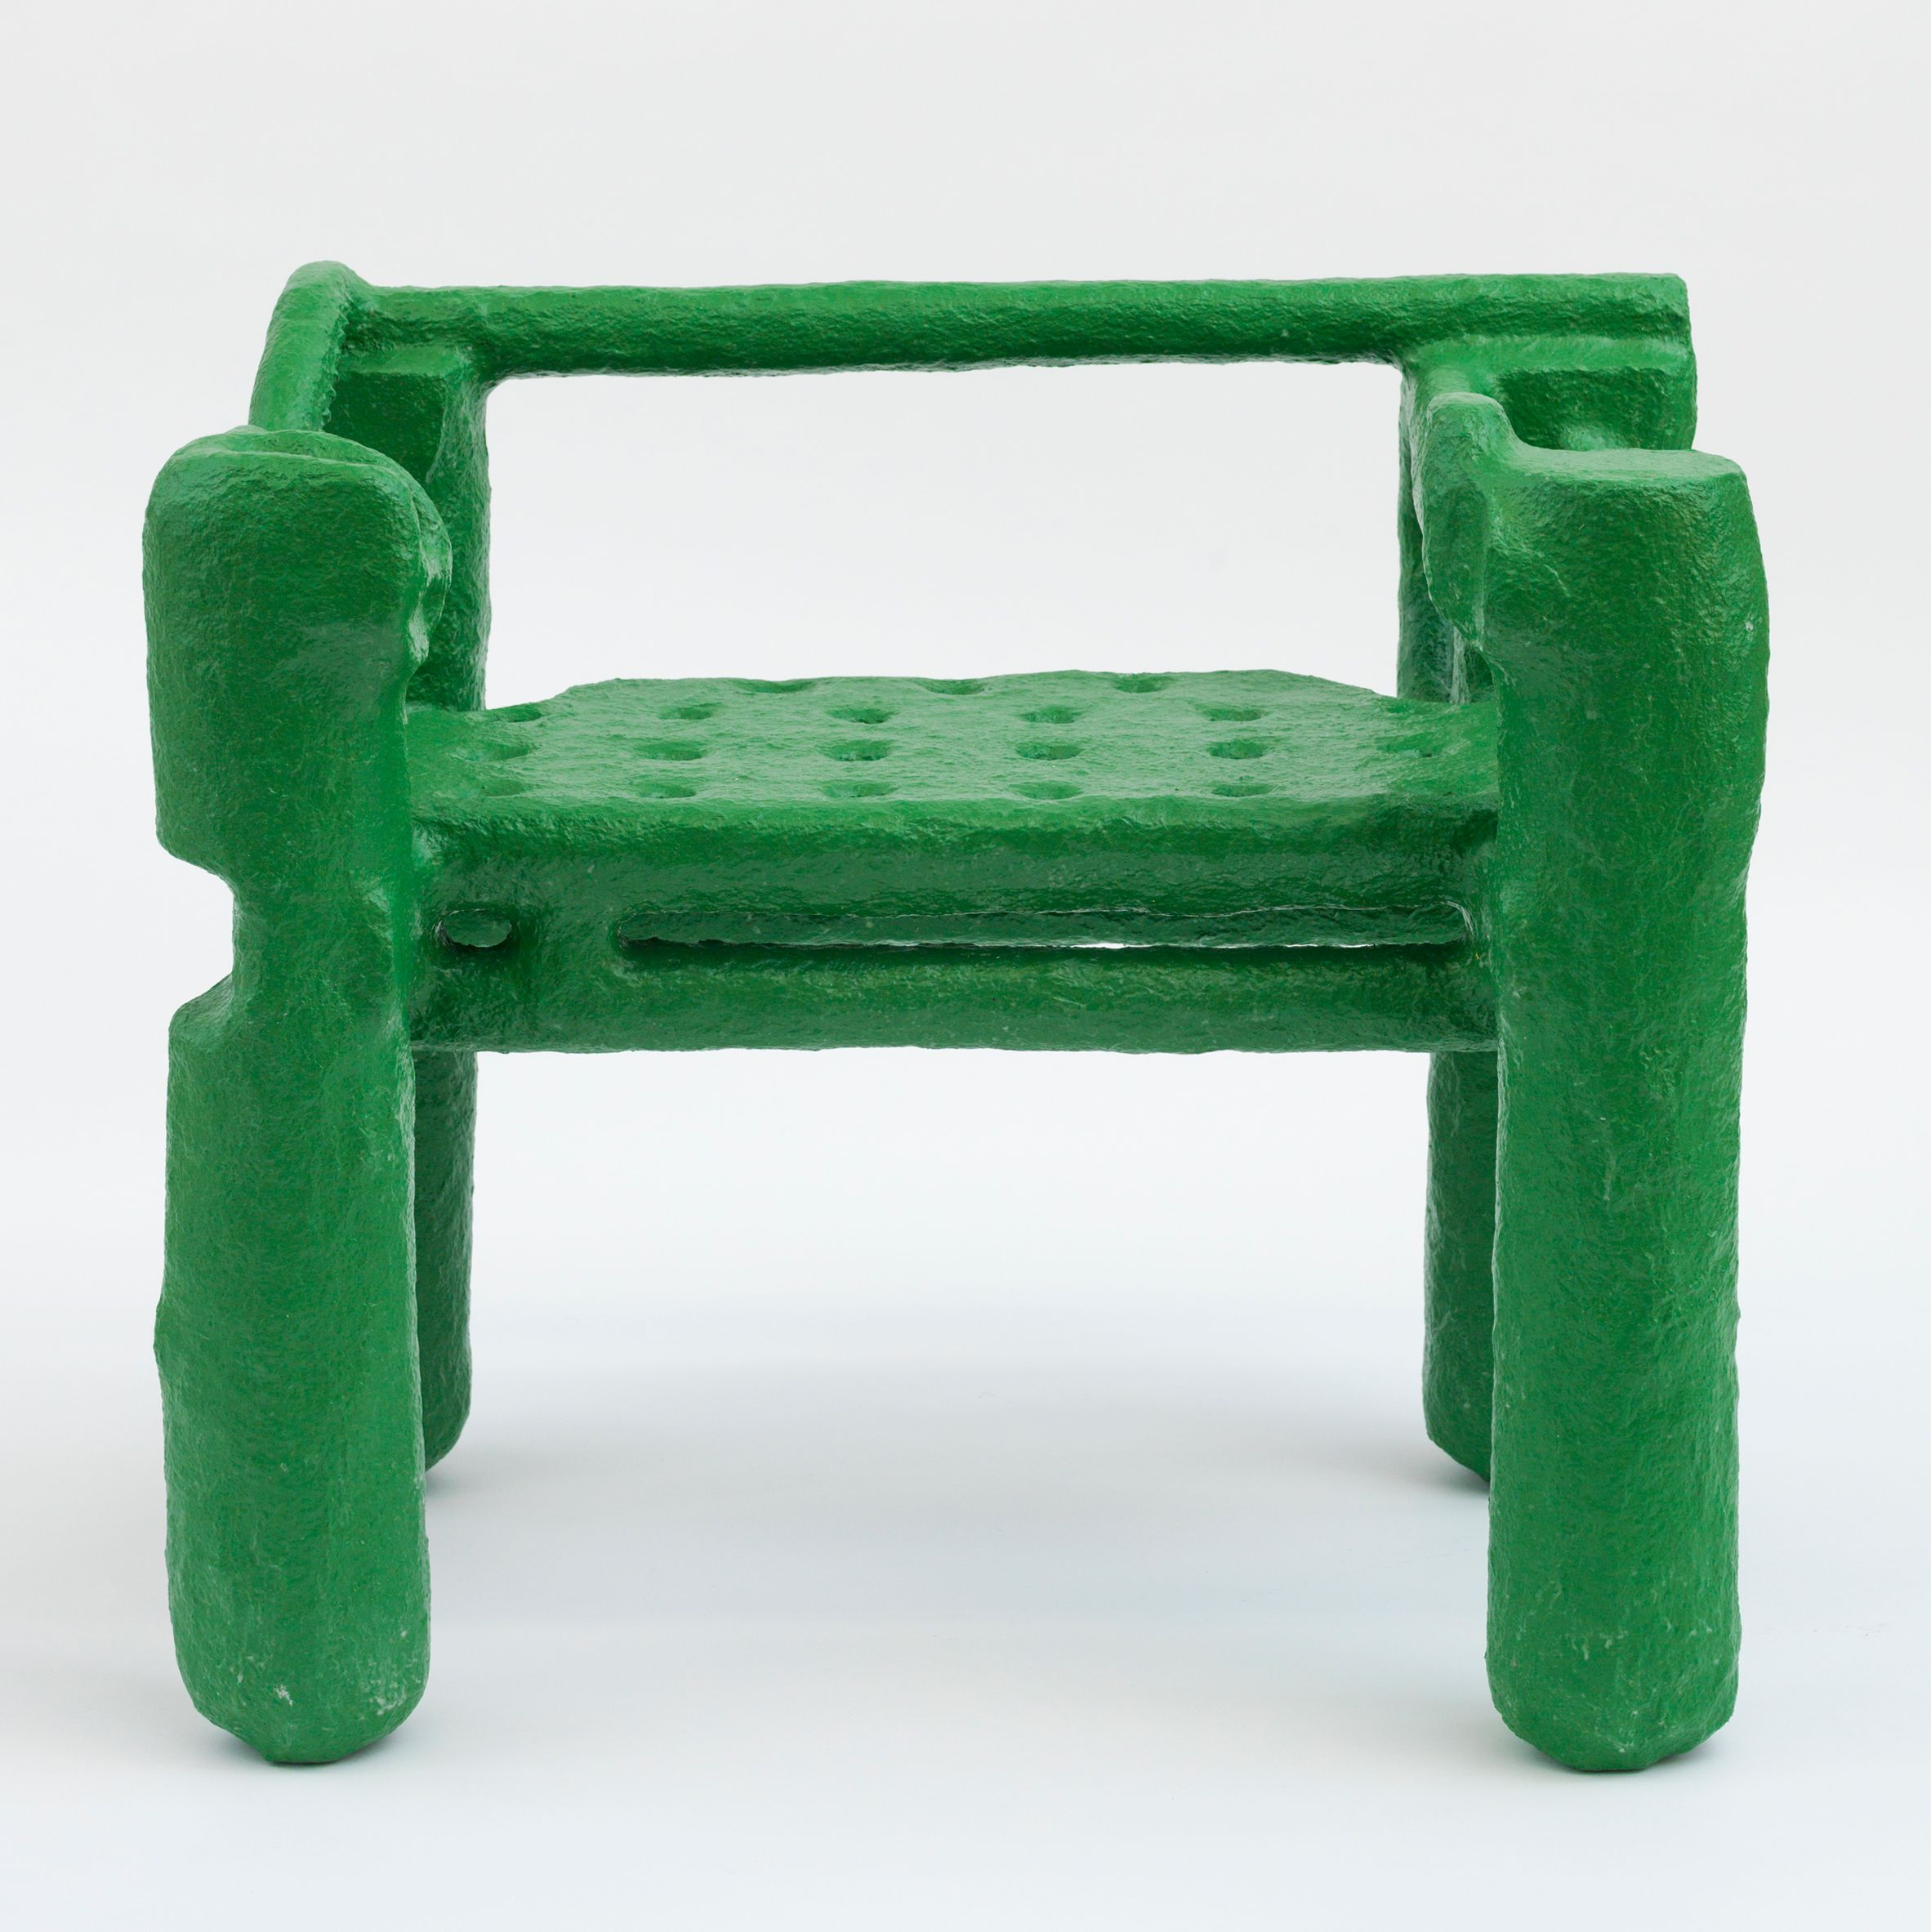 Brooklyn Artist Thomas Barger Has Created A Series Of Furniture Pieces Based On His Childhood Experiences In Il Modern Kids Room Furniture Modern Nursery Decor